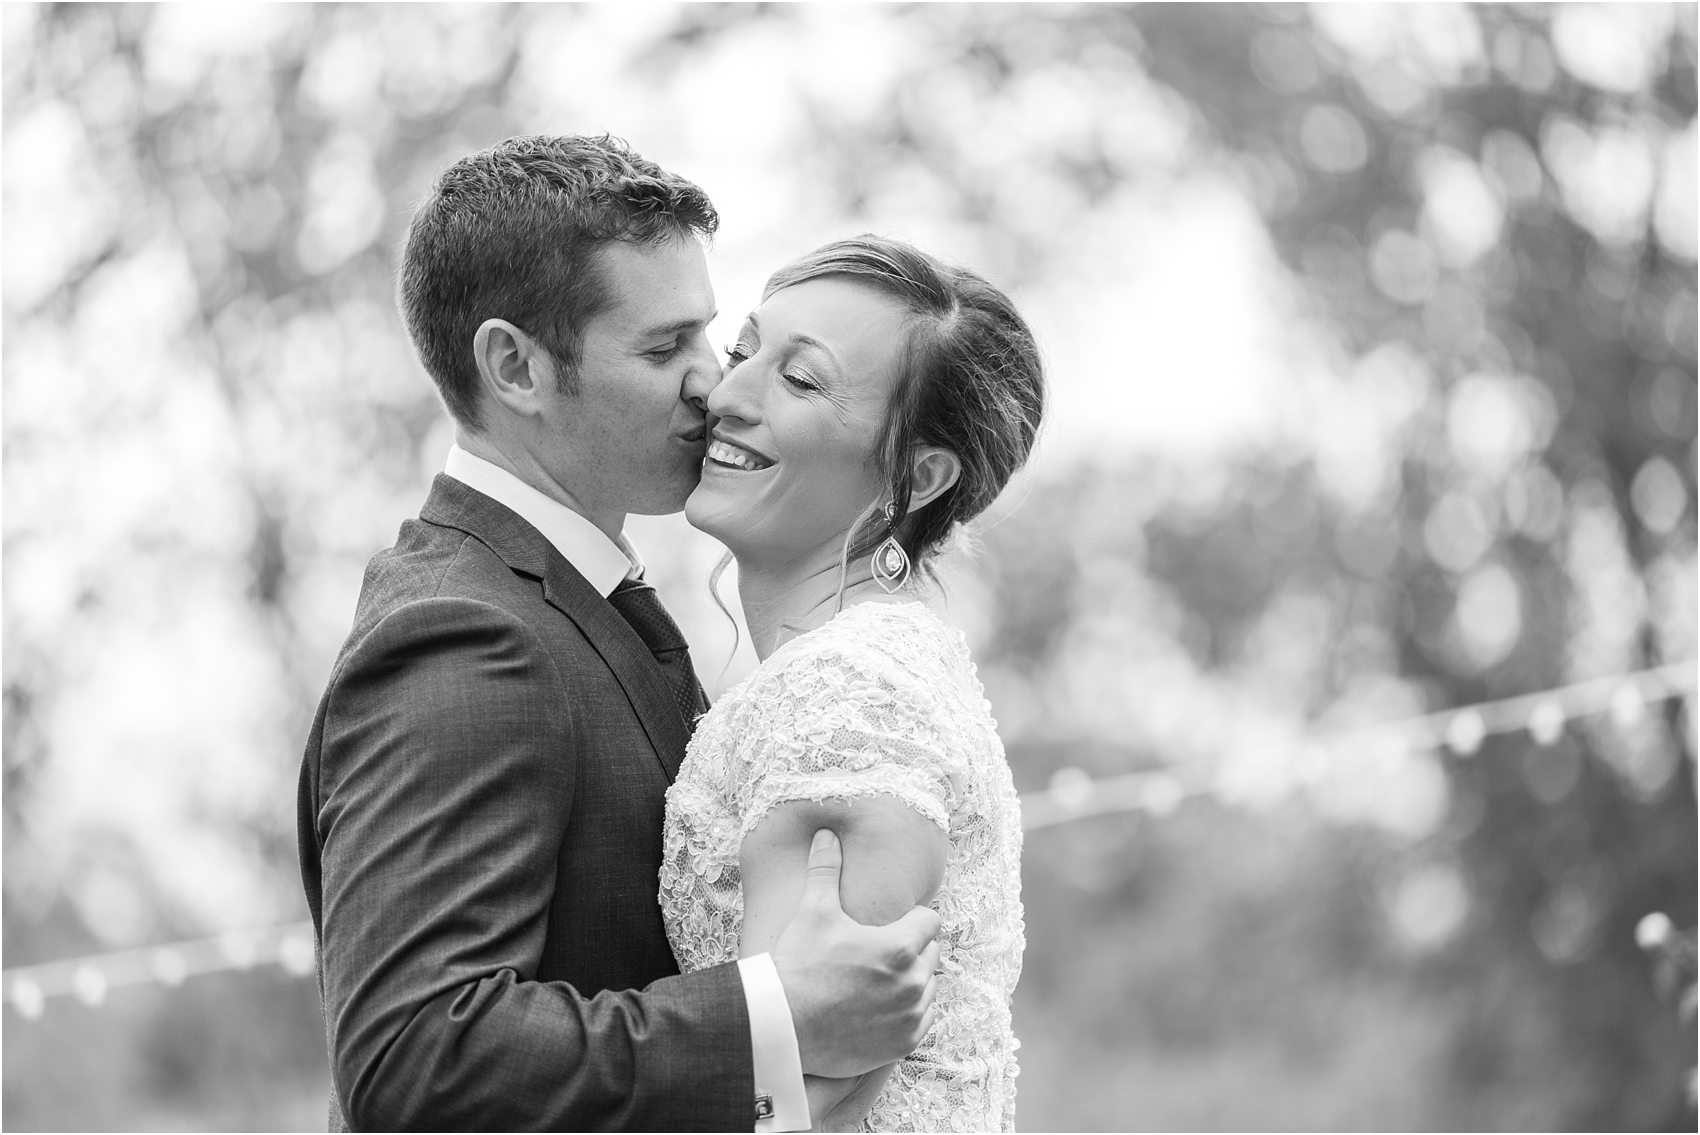 romantic-intimate-backyard-wedding-photos-at-private-estate-in-ann-arbor-mi-by-courtney-carolyn-photography_0027.jpg